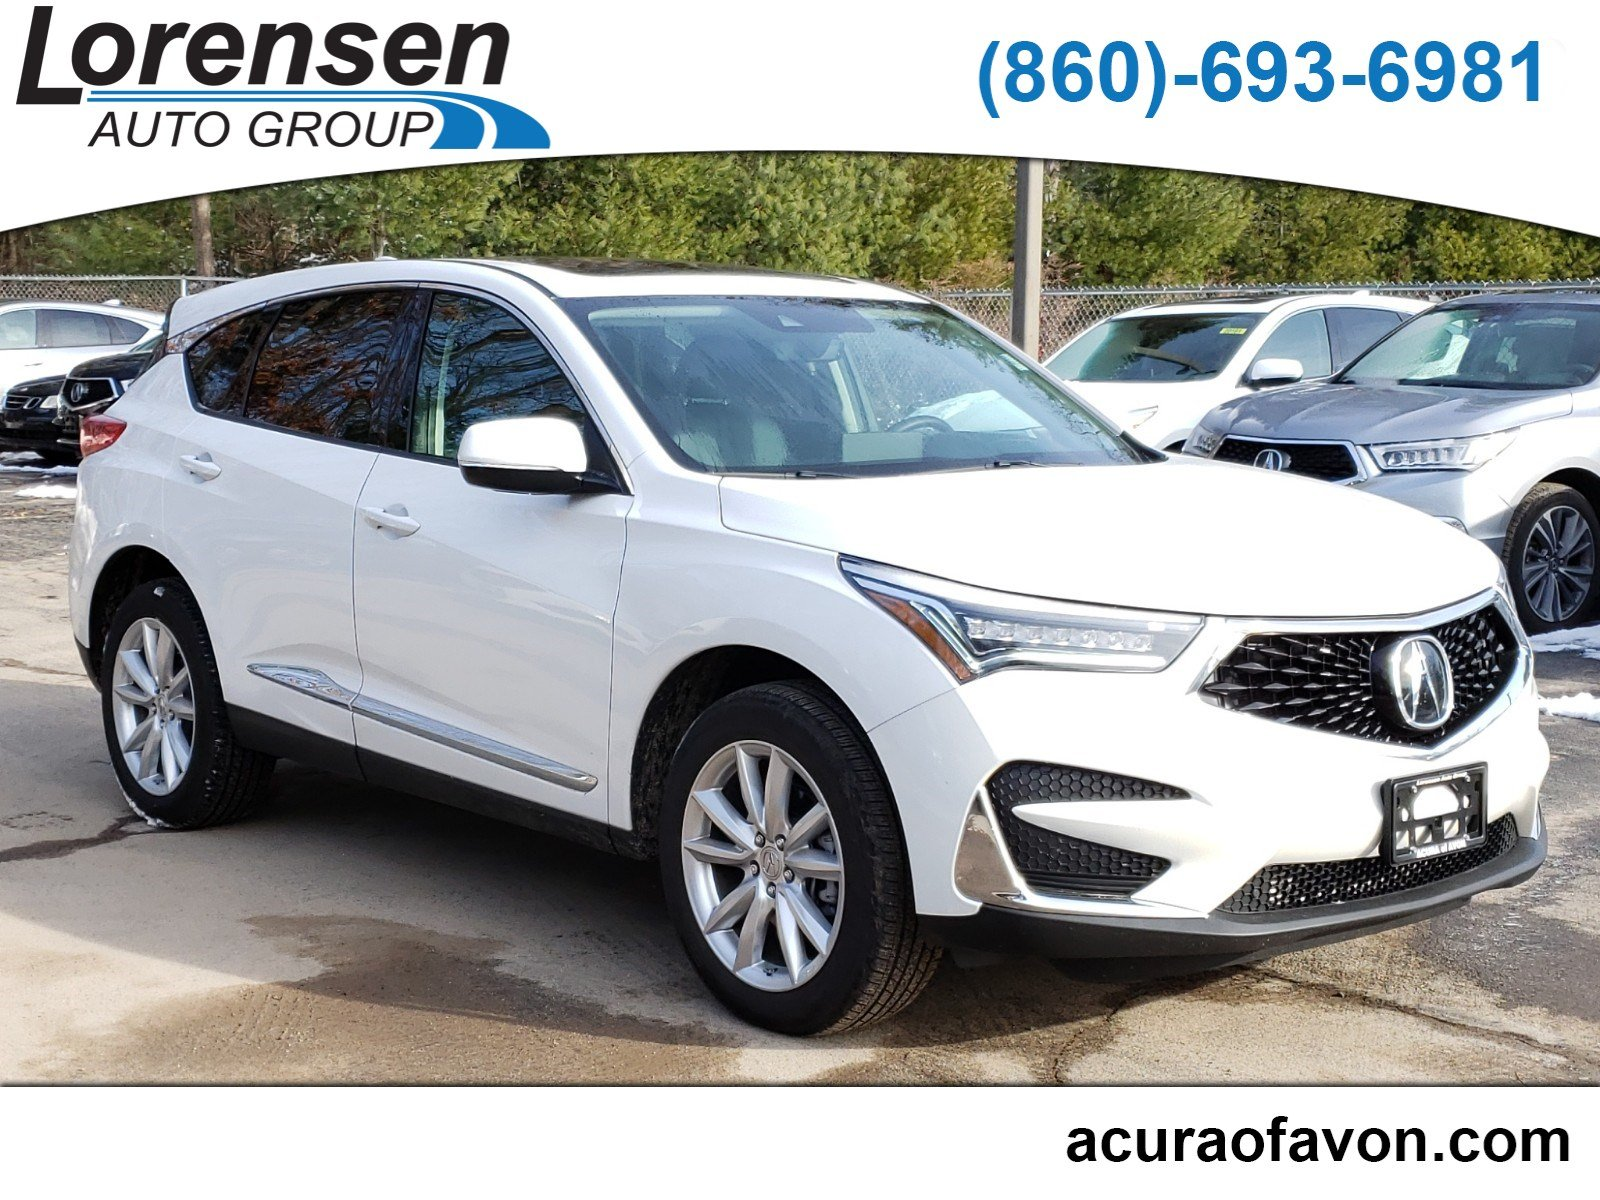 Certified Pre-Owned 2020 Acura RDX SH-AWD